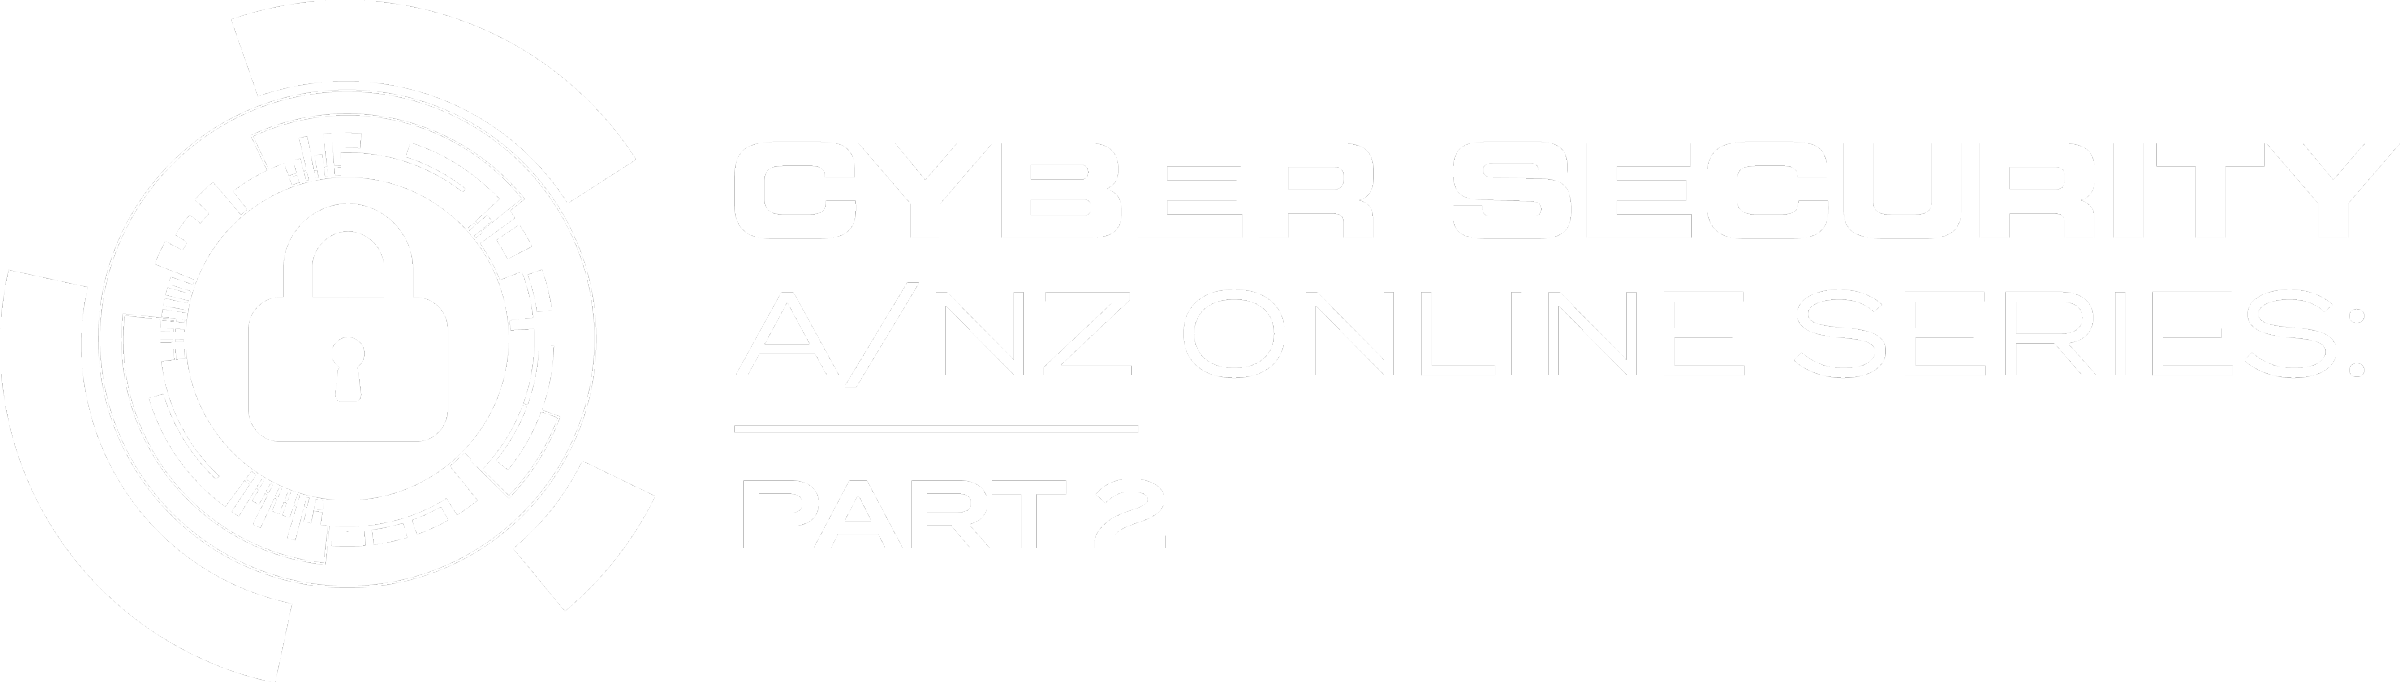 A/NZ 2021 VIRTUAL CYBER SECURITY SERIES: PART 2